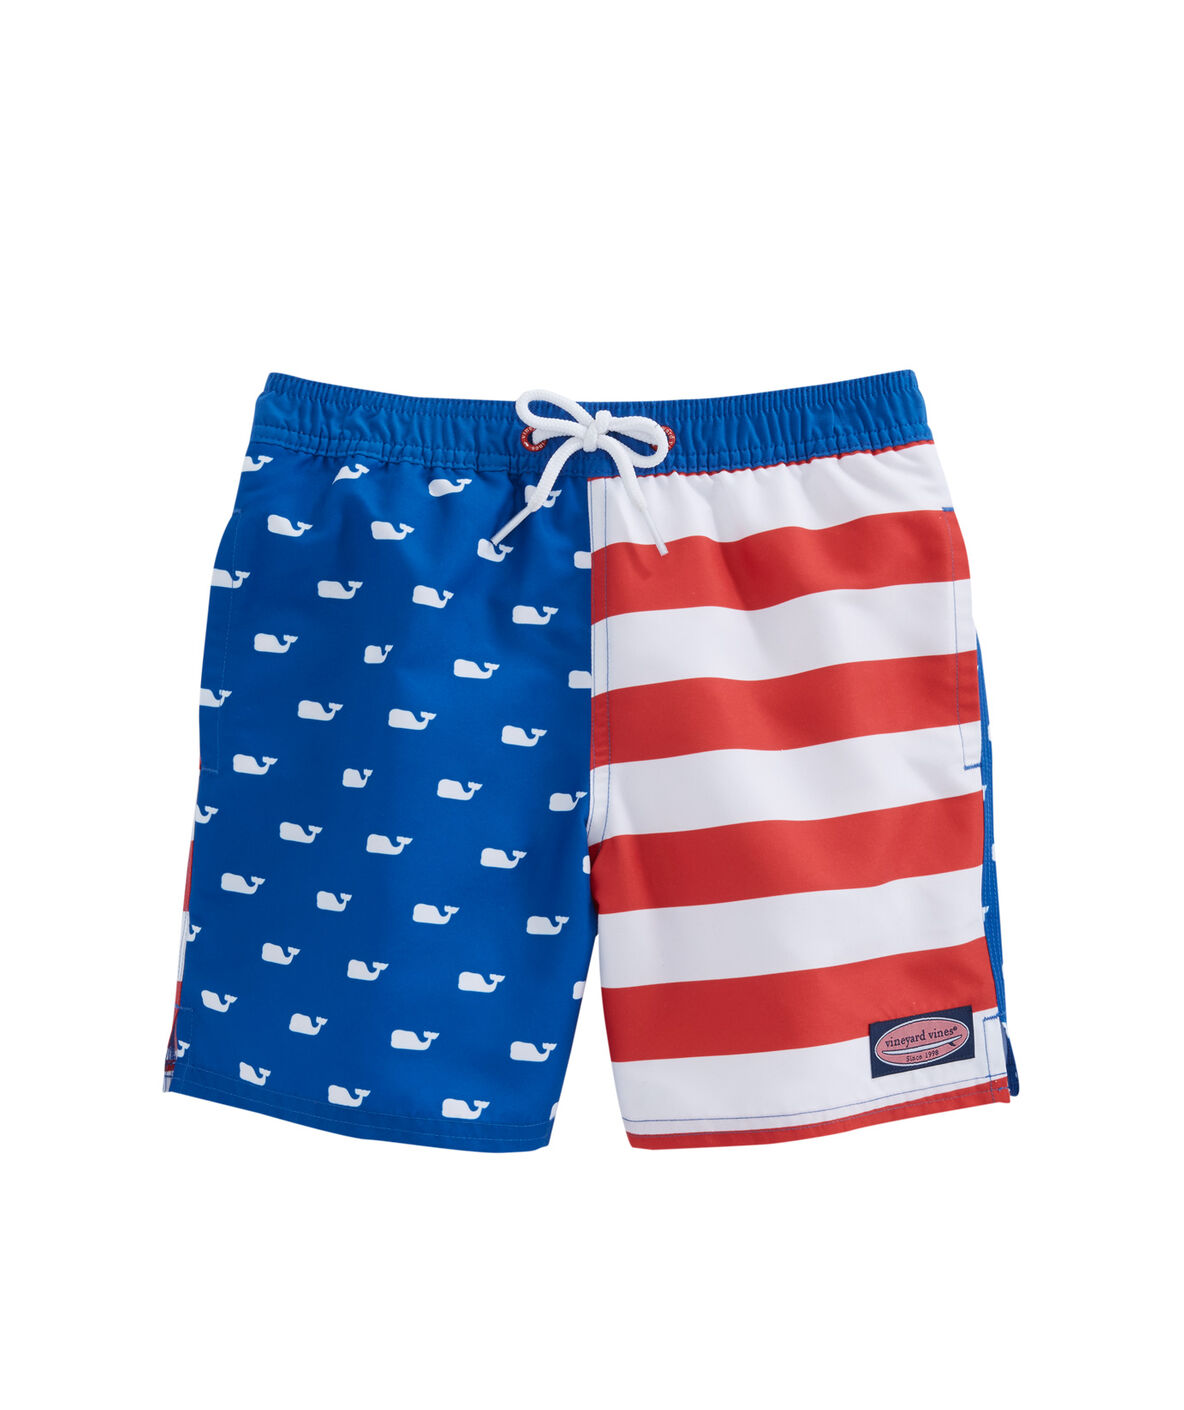 ee6d5ae547 Boys Whale Flag Chappy Trunks. Zoom In